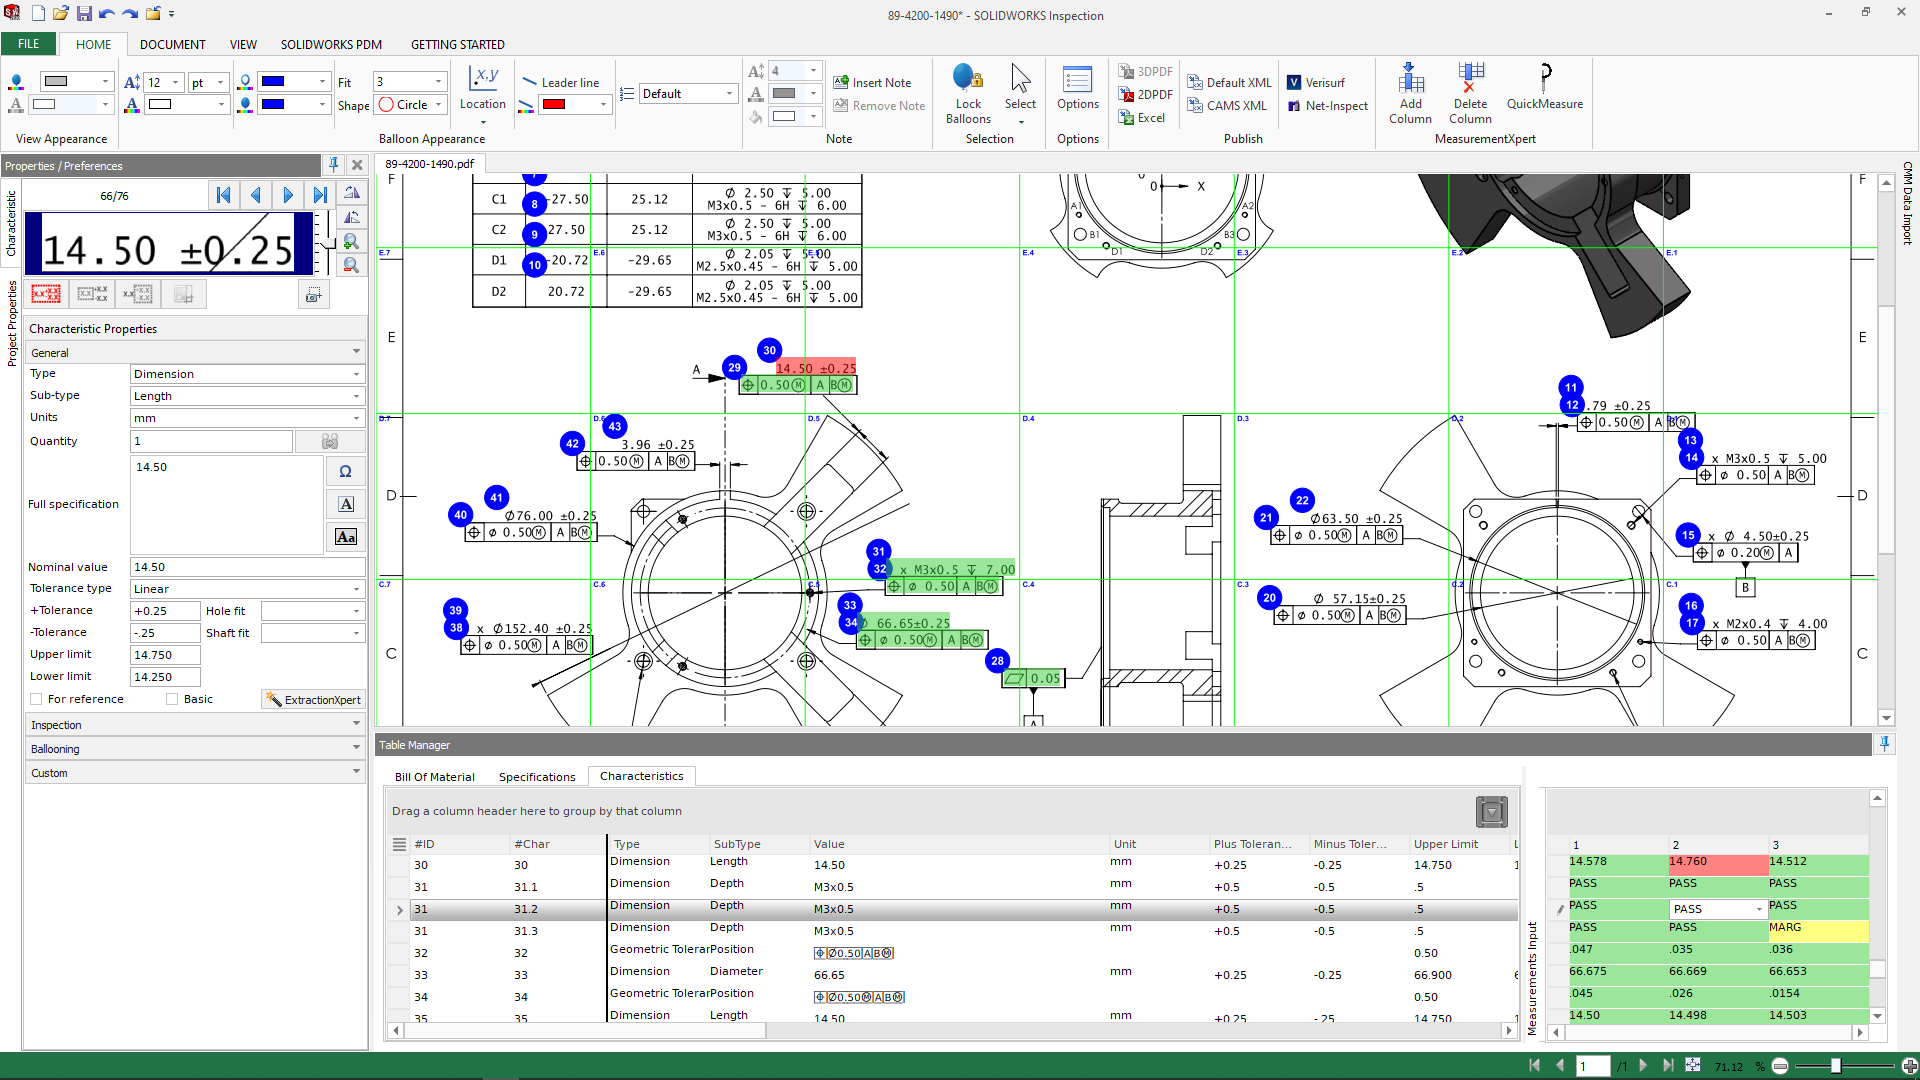 Learn How to Consolidate Reports with SOLIDWORKS Inspection